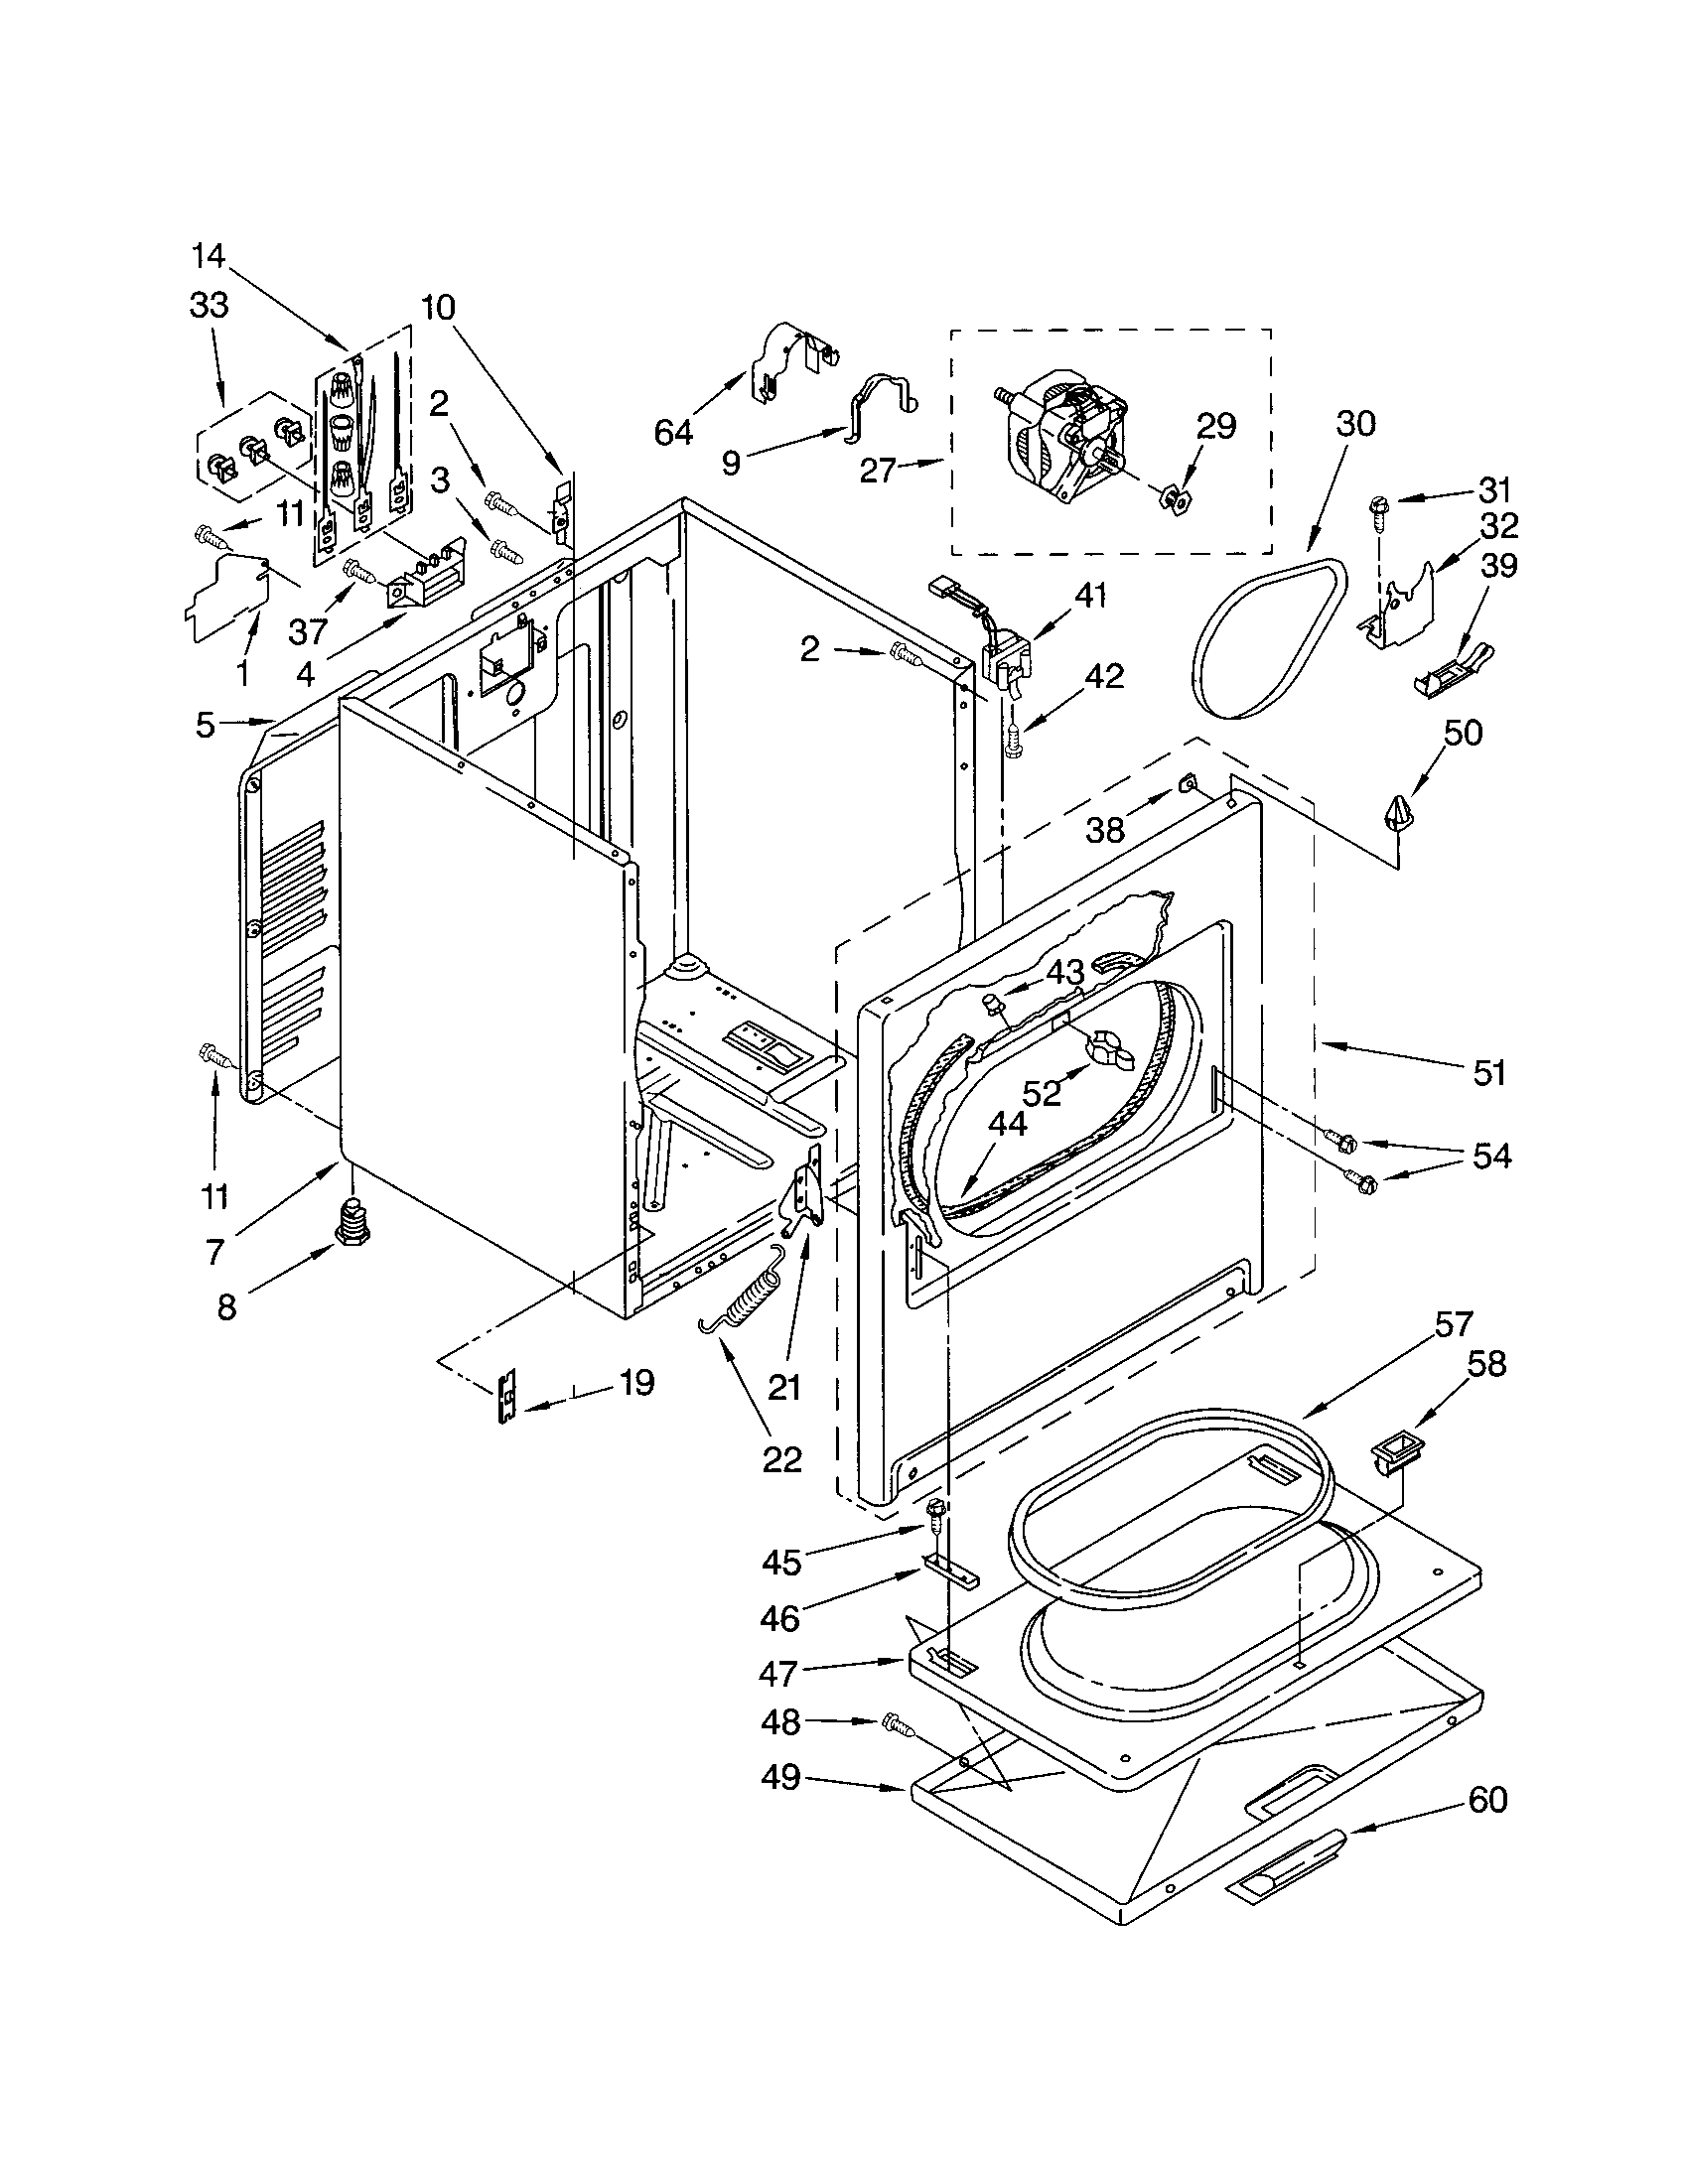 CABINET Diagram & Parts List for Model 11064602300 Kenmore